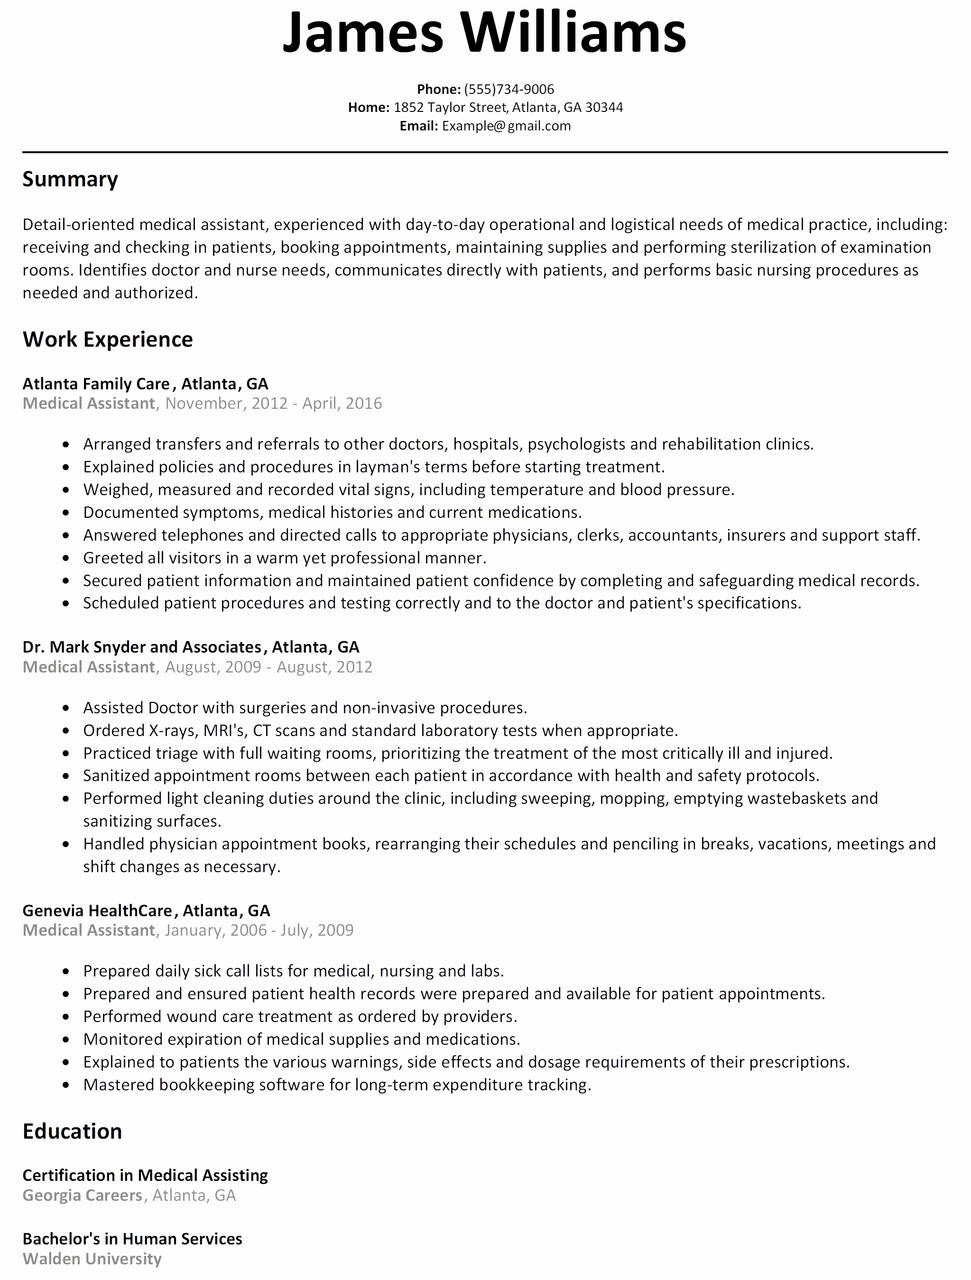 Physician Resume Template Word - Resume Template Word Download New Free Resume Templates Downloads